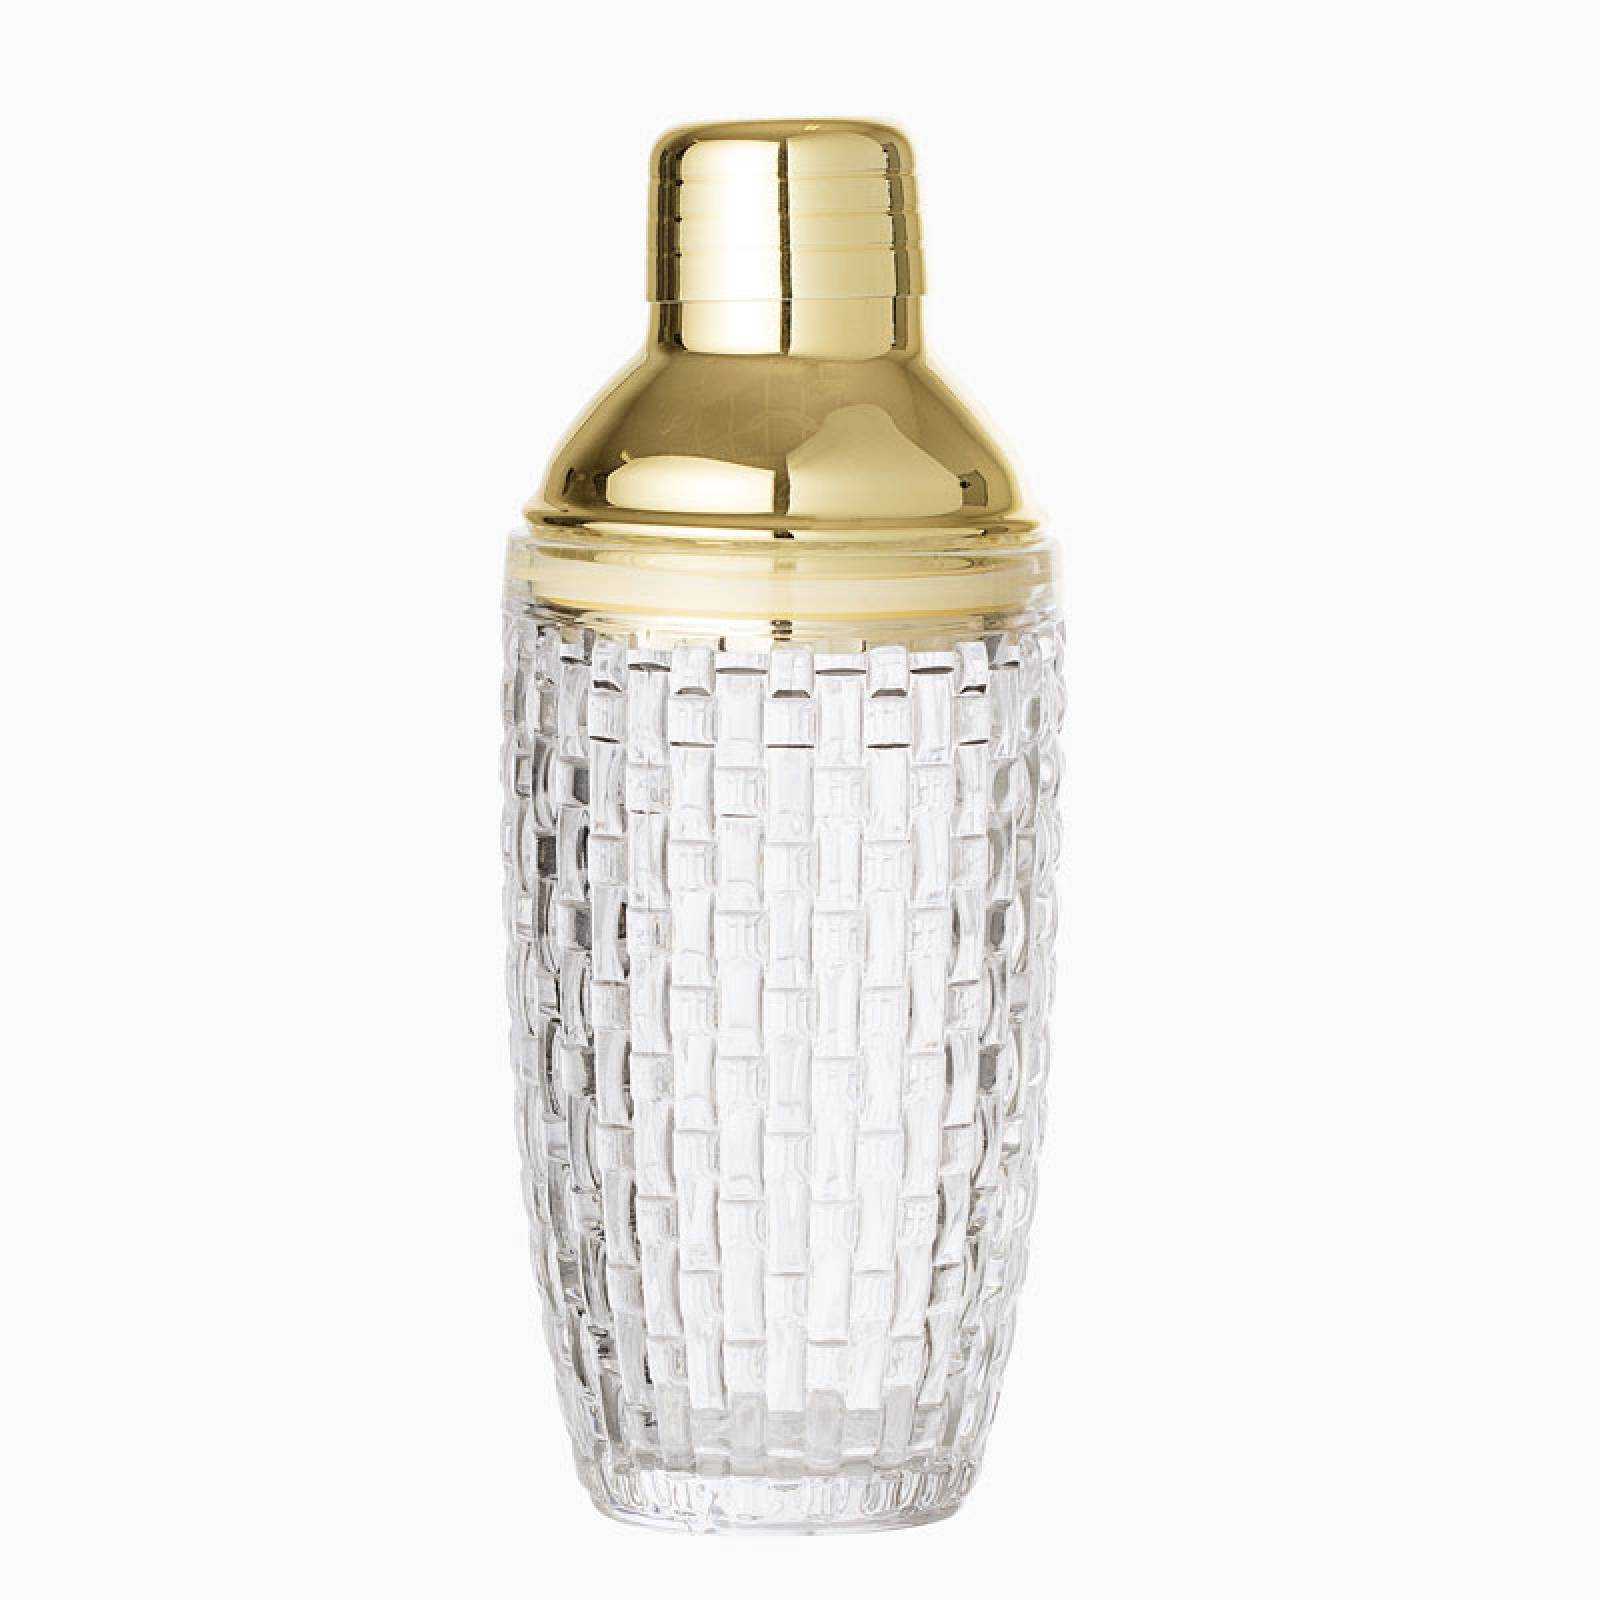 Deco Style Glass Cocktail Shaker 22cm